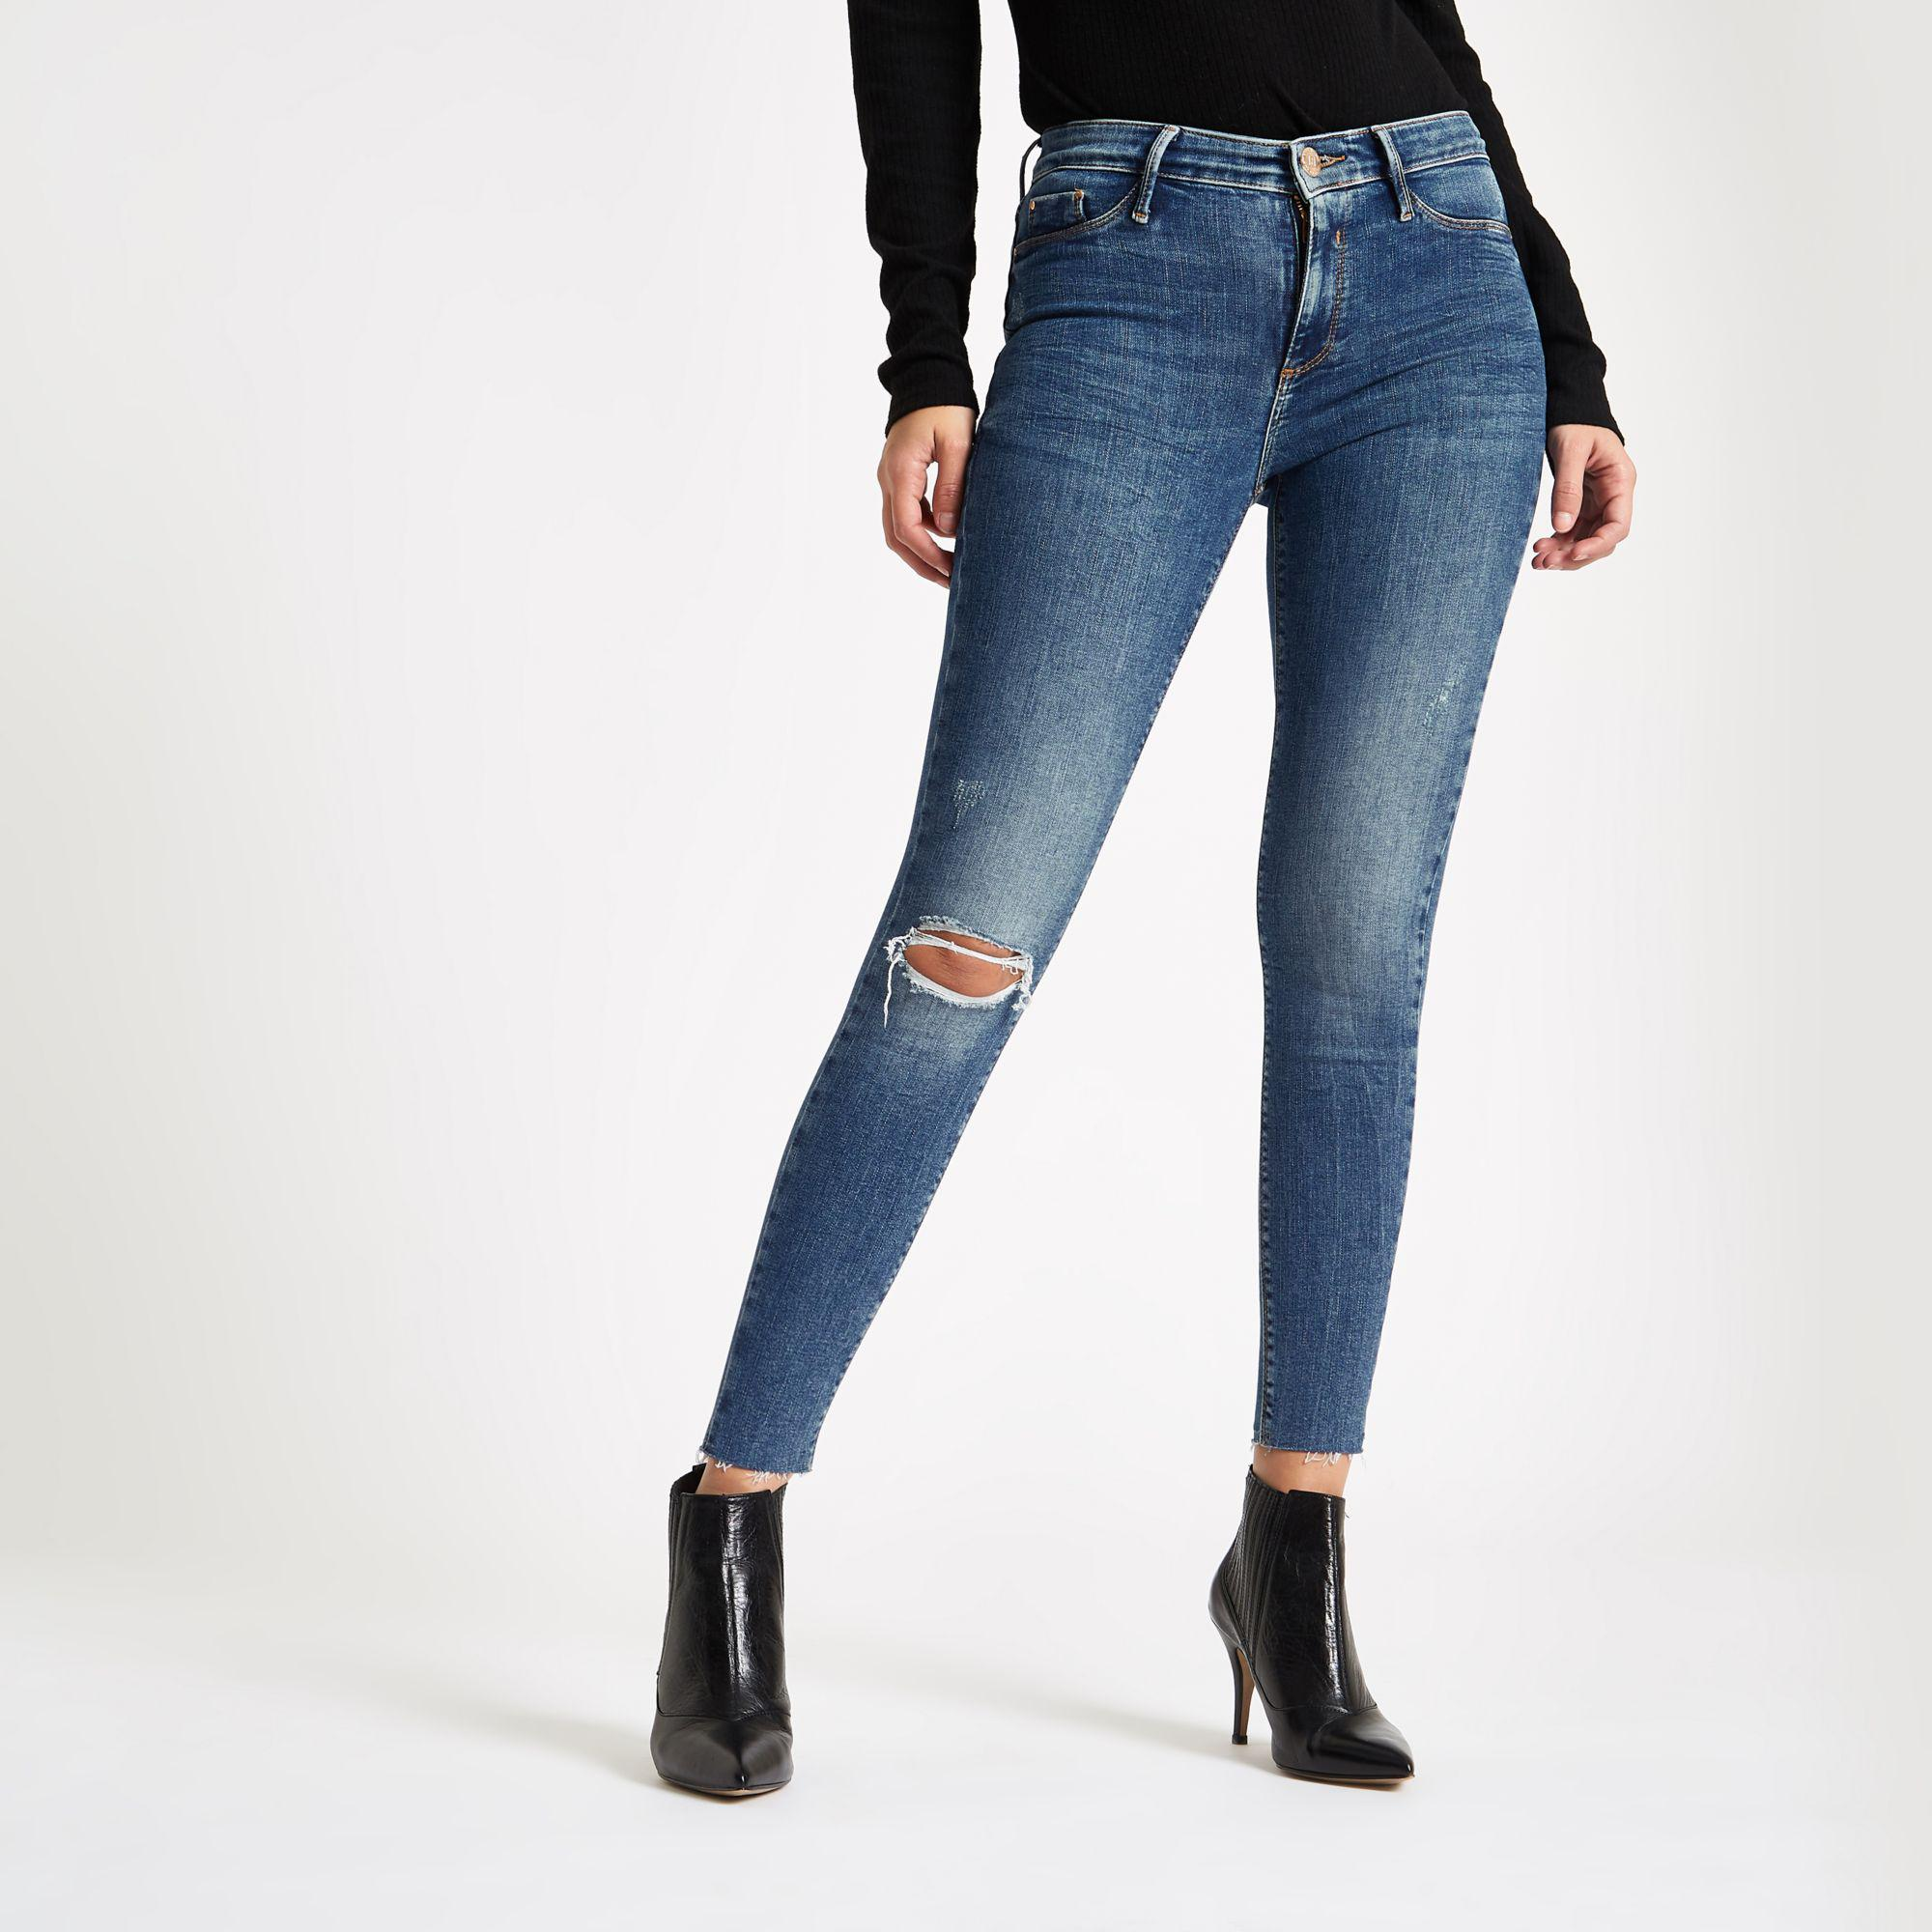 0f94c0deeb54a Lyst - River Island Mid Blue Molly Mid Rise Ripped jeggings in Blue